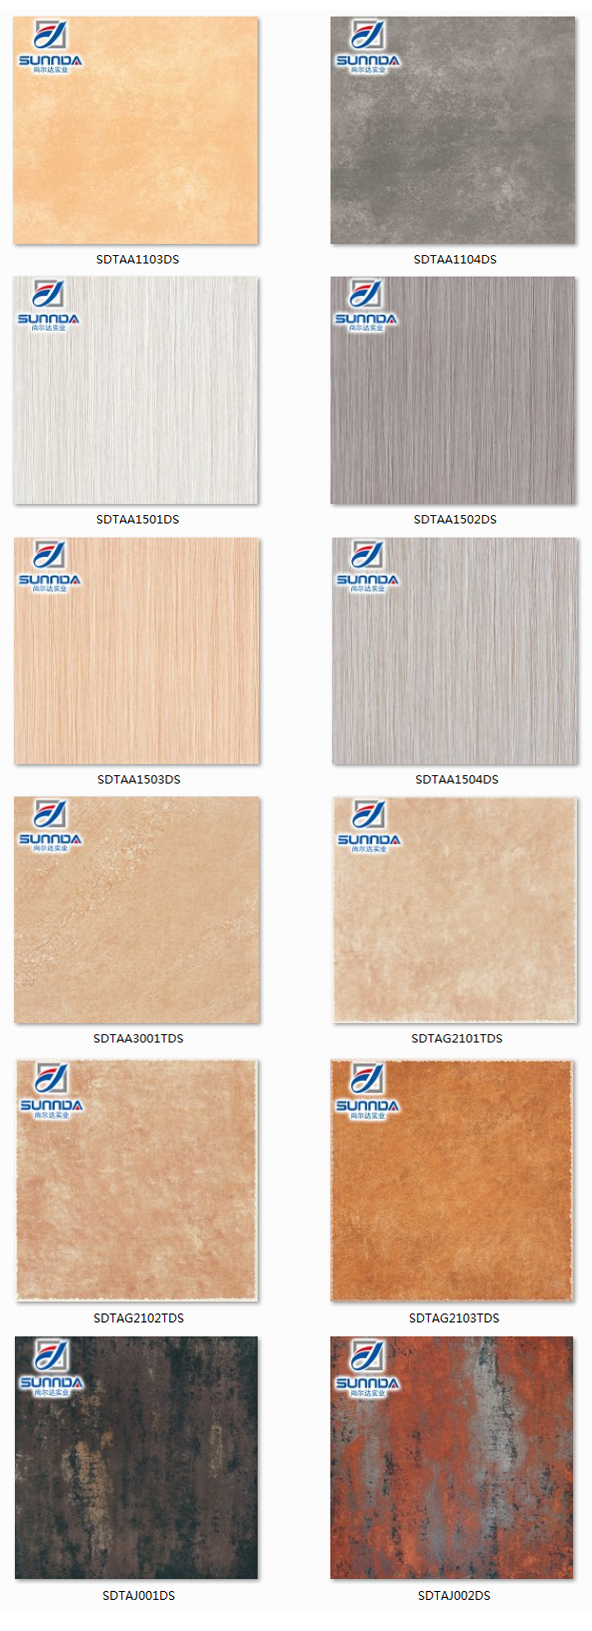 Sunnda Yellow Porcelin Tiles, Anti Slip Bathroom Floor Tiles, Non Slip  Exterior Floor Part 76